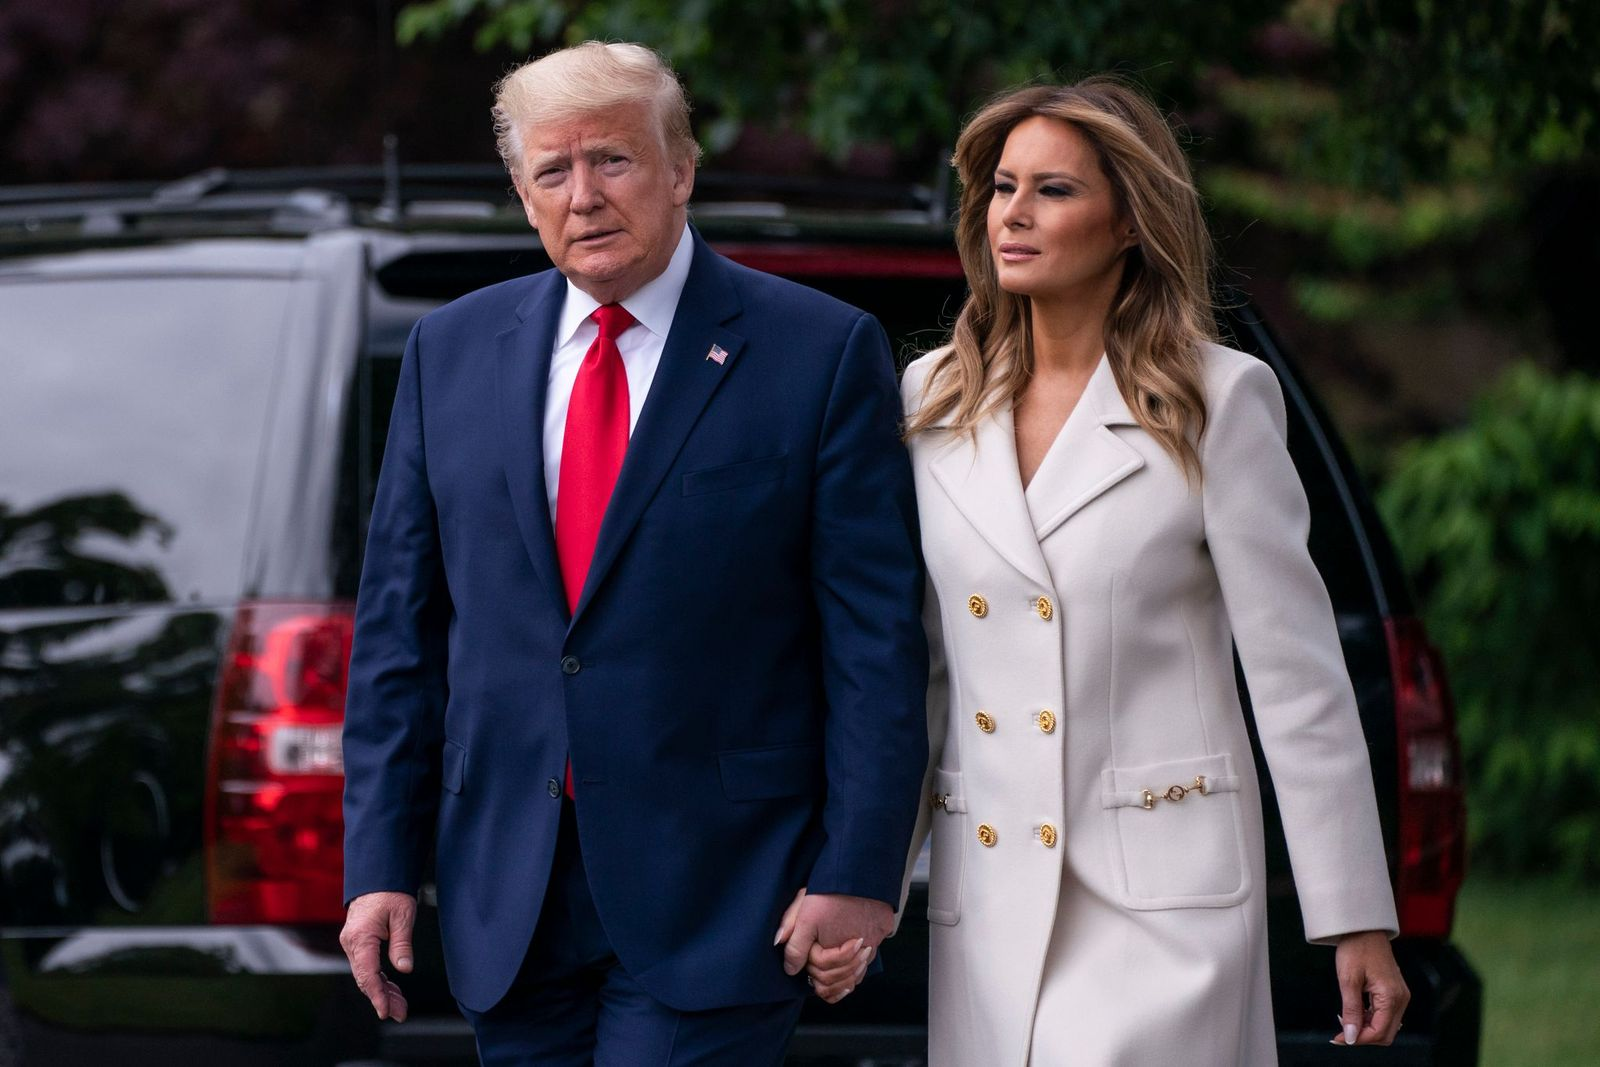 President Donald Trump and first lady Melania Trump leavethe White House for Baltimore, Maryland on May 25, 2020 in Washington, DC. | Photo: Sarah Silbiger/Getty Images